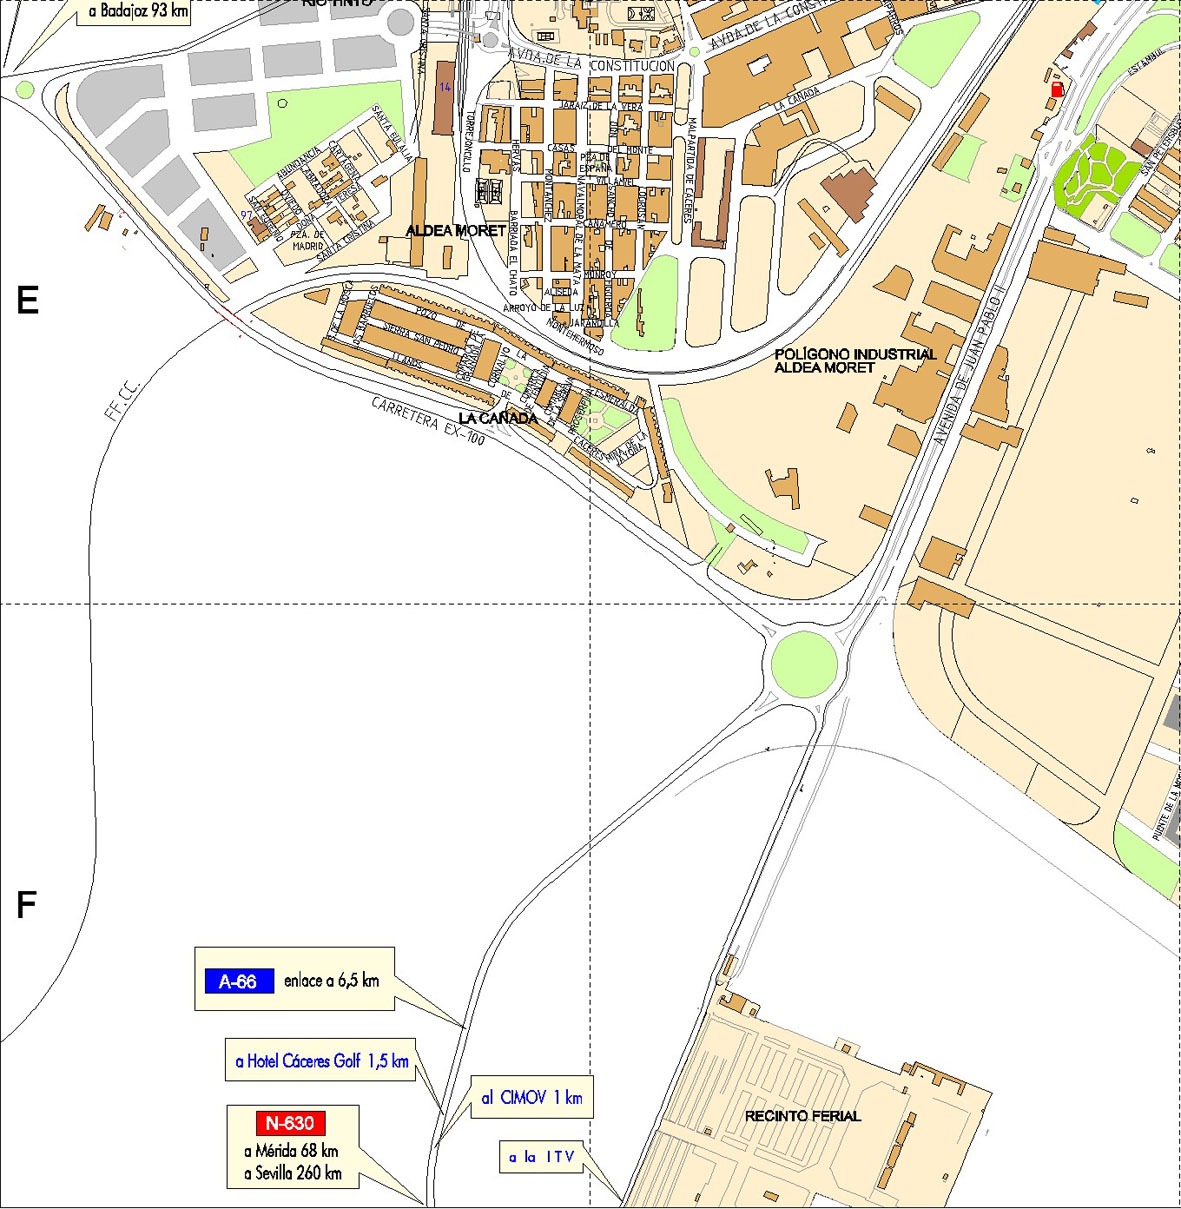 Descargar callejero caceres gis download by quadrants in pdf format gumiabroncs Choice Image